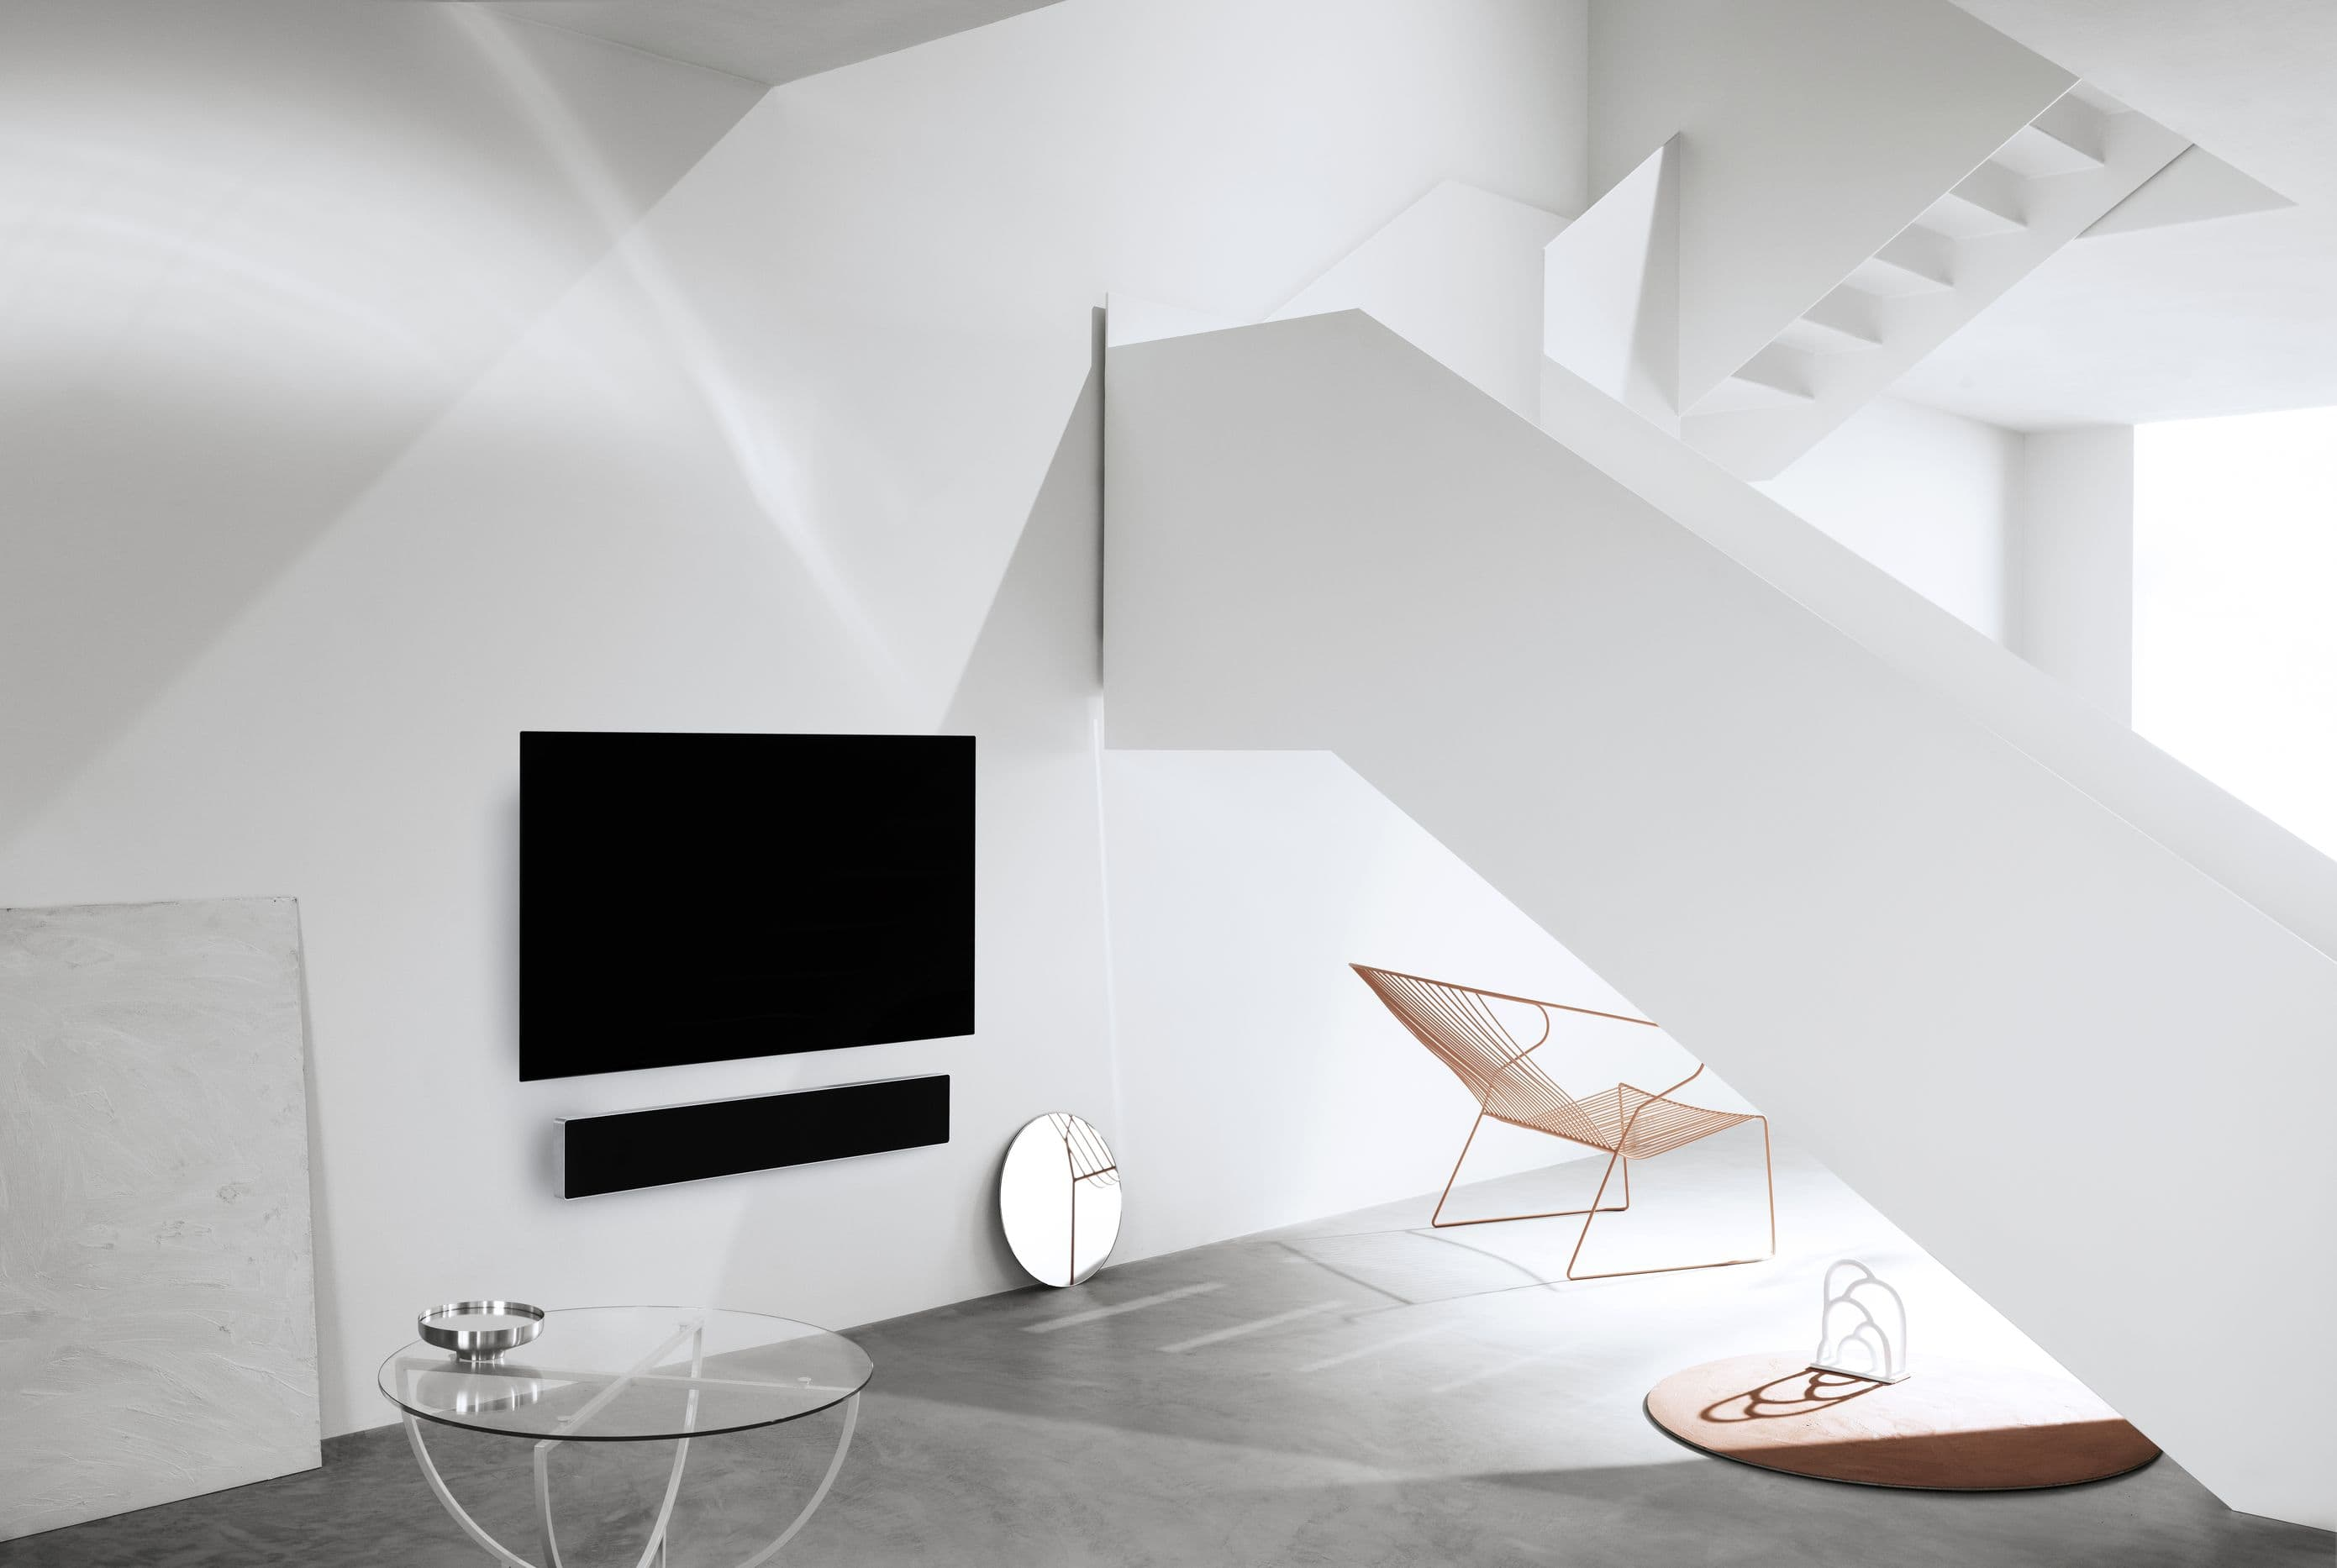 Bang & Olufsen take the Stage with their first soundbar